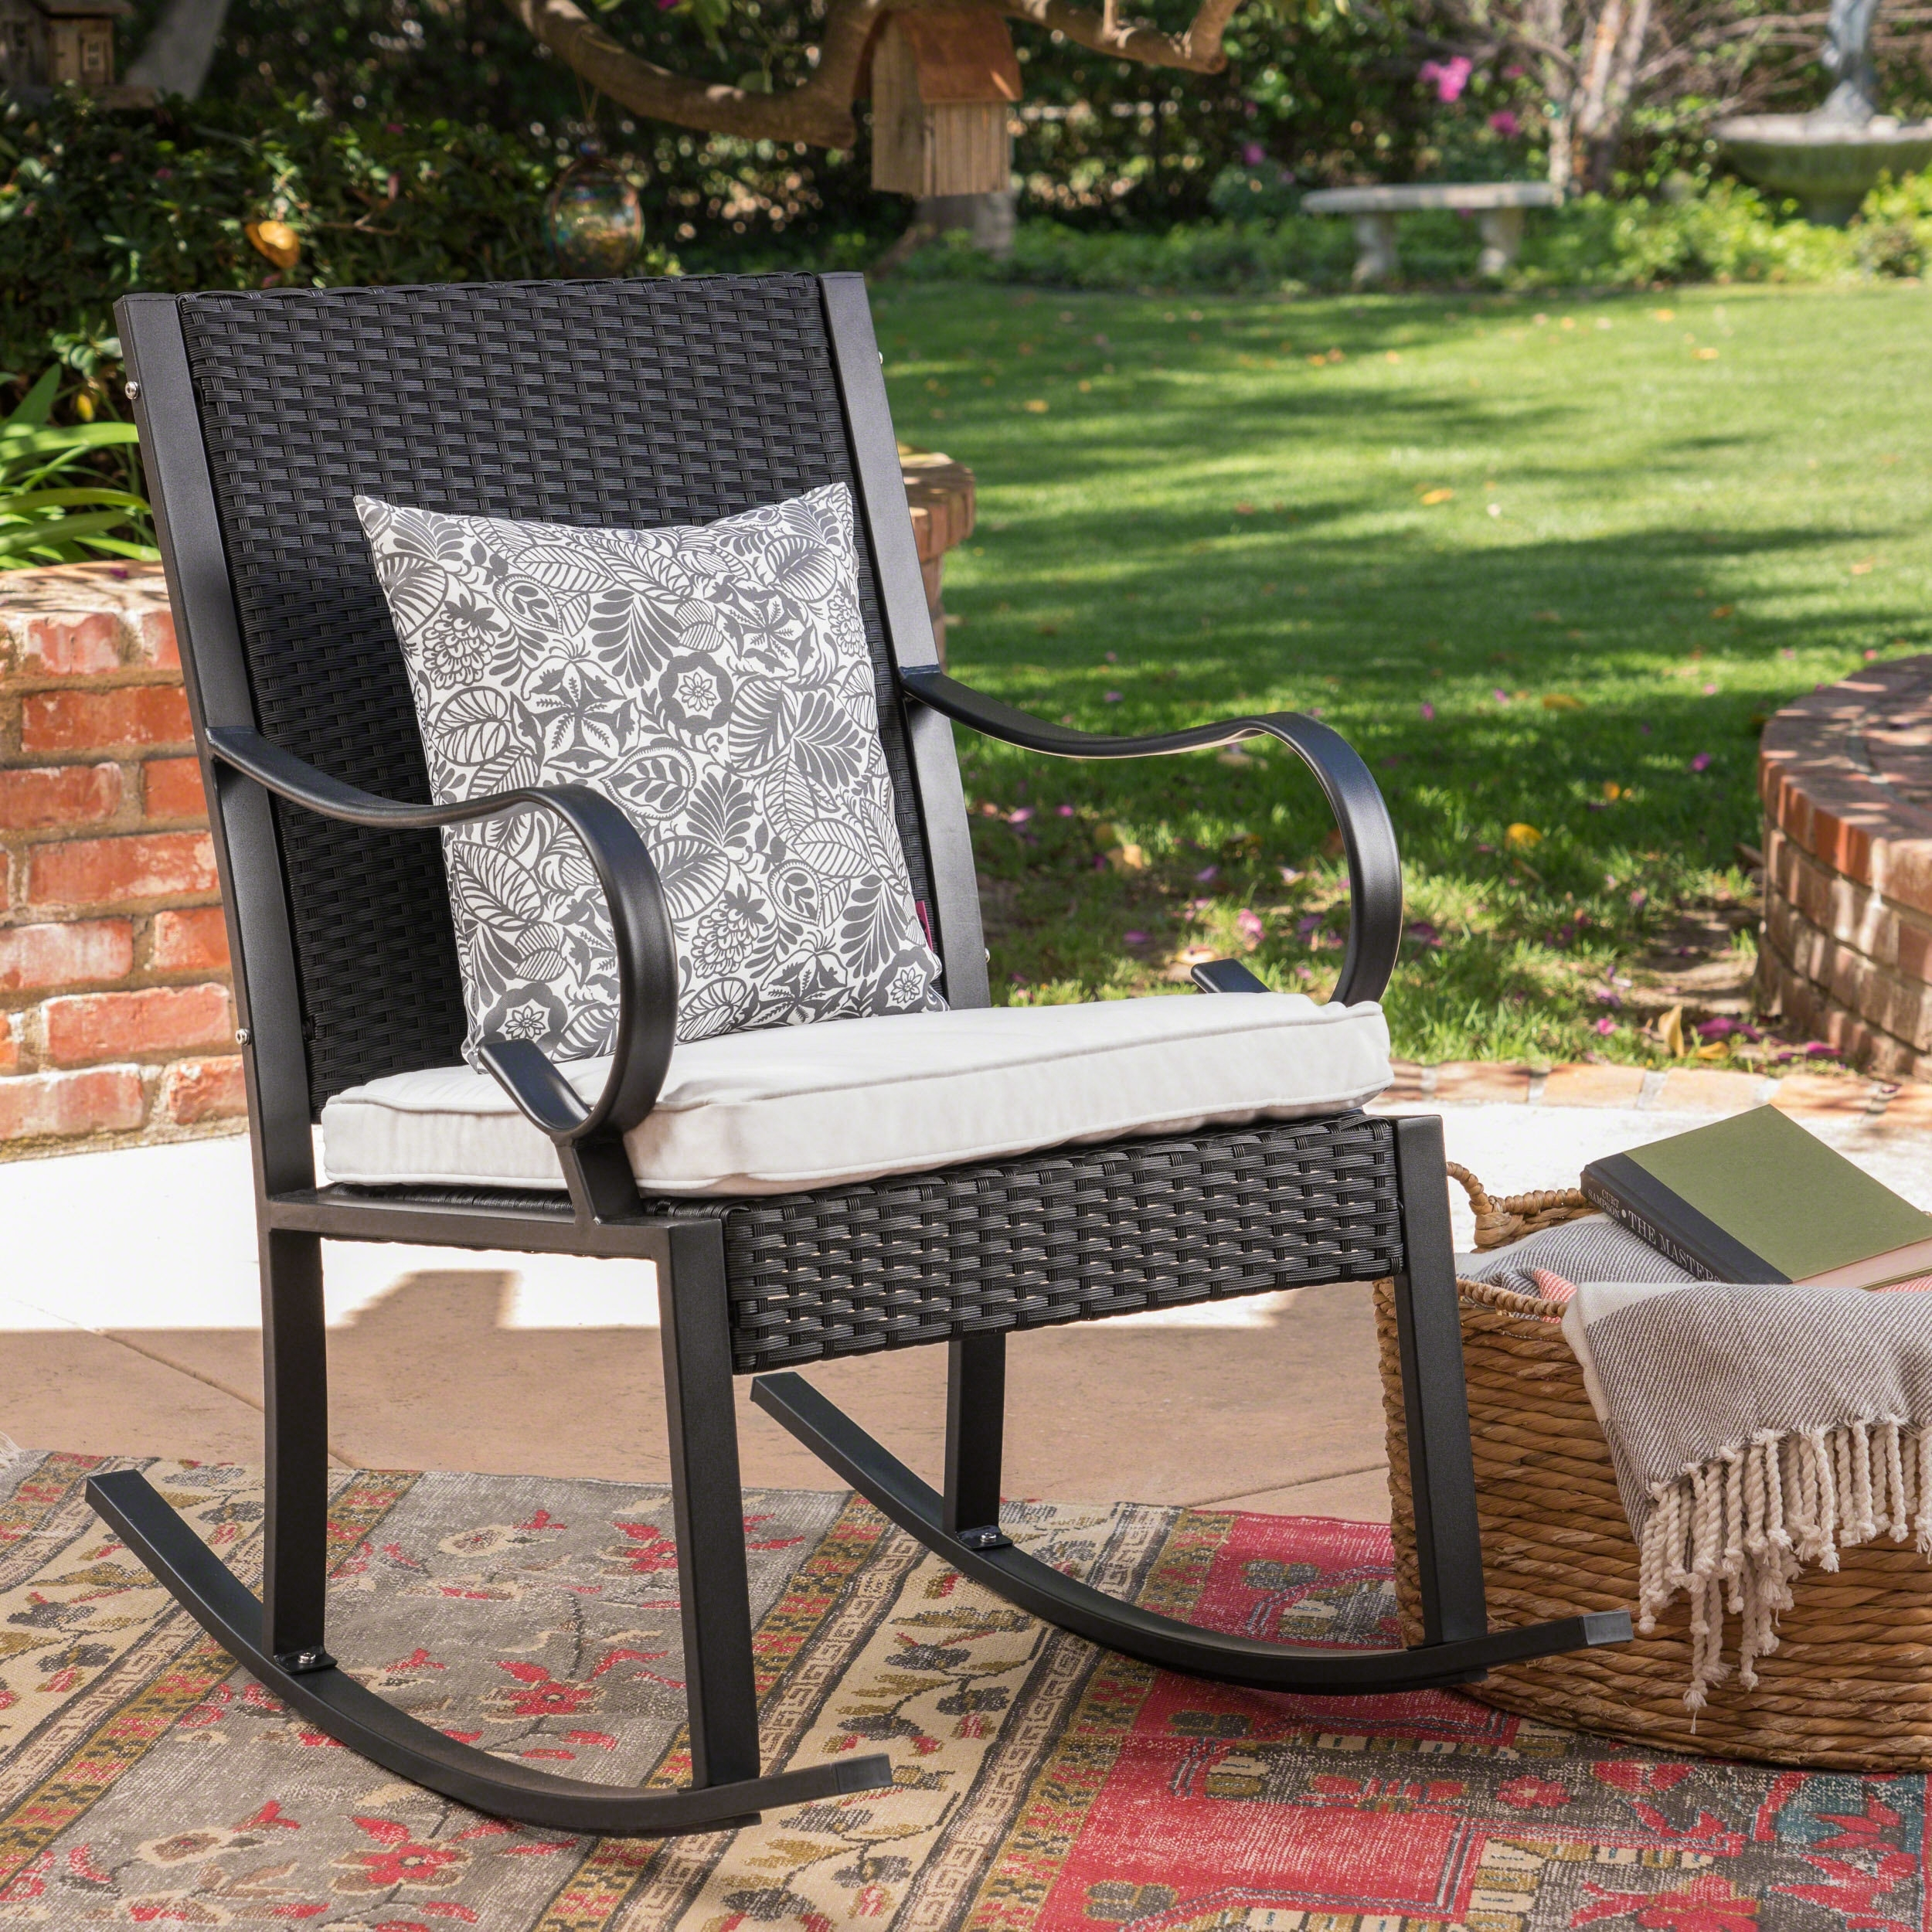 August Grove Kampmann Outdoor Wicker Rocking Chair With Cushions With Regard To Wicker Rocking Chairs With Cushions (#1 of 15)